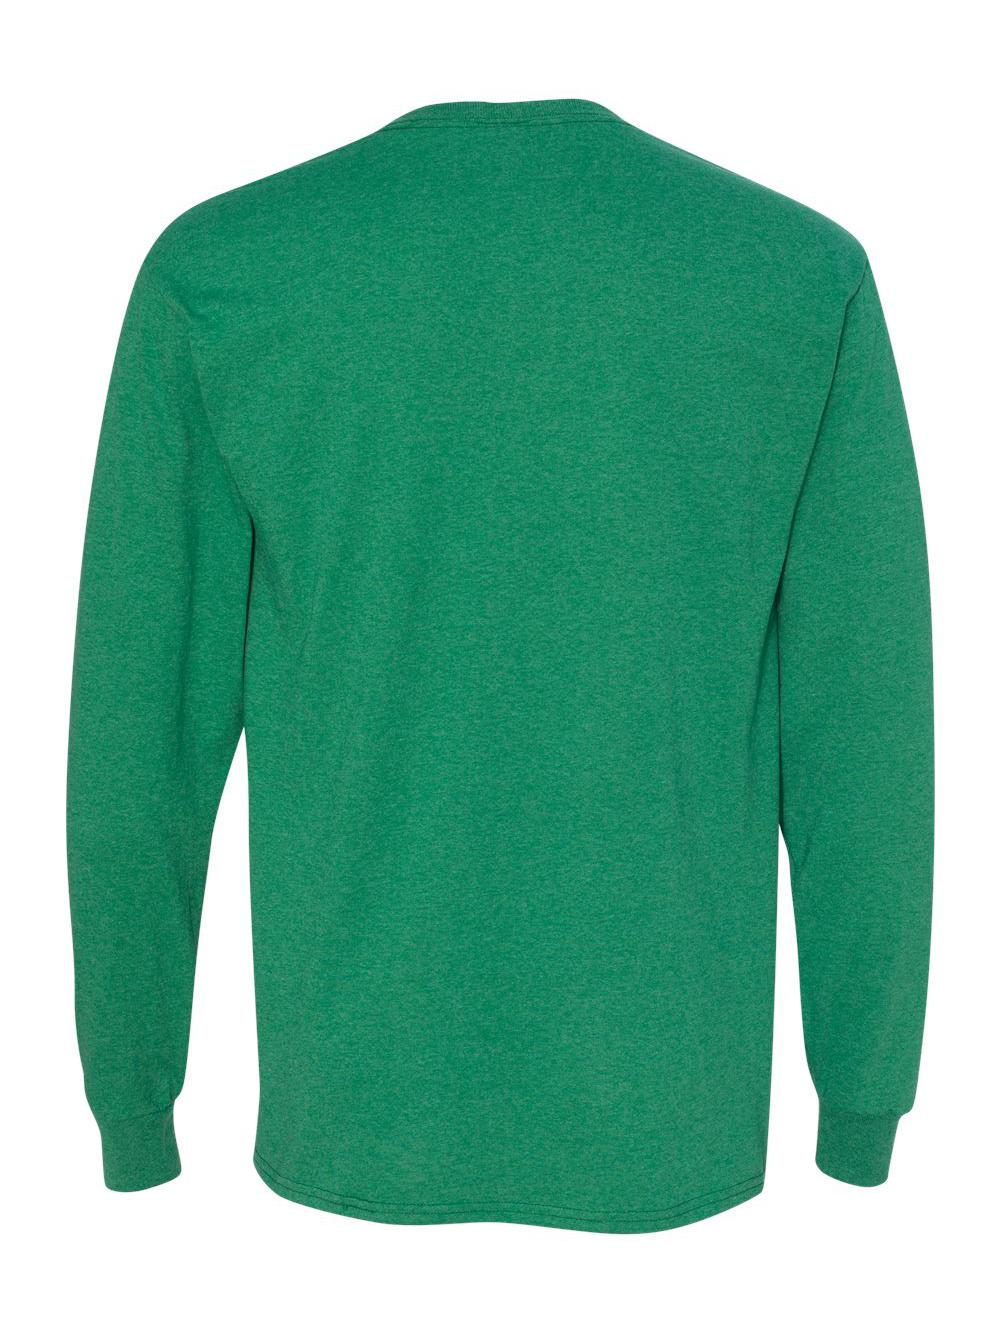 Fruit-of-the-Loom-HD-Cotton-Long-Sleeve-T-Shirt-4930R thumbnail 64